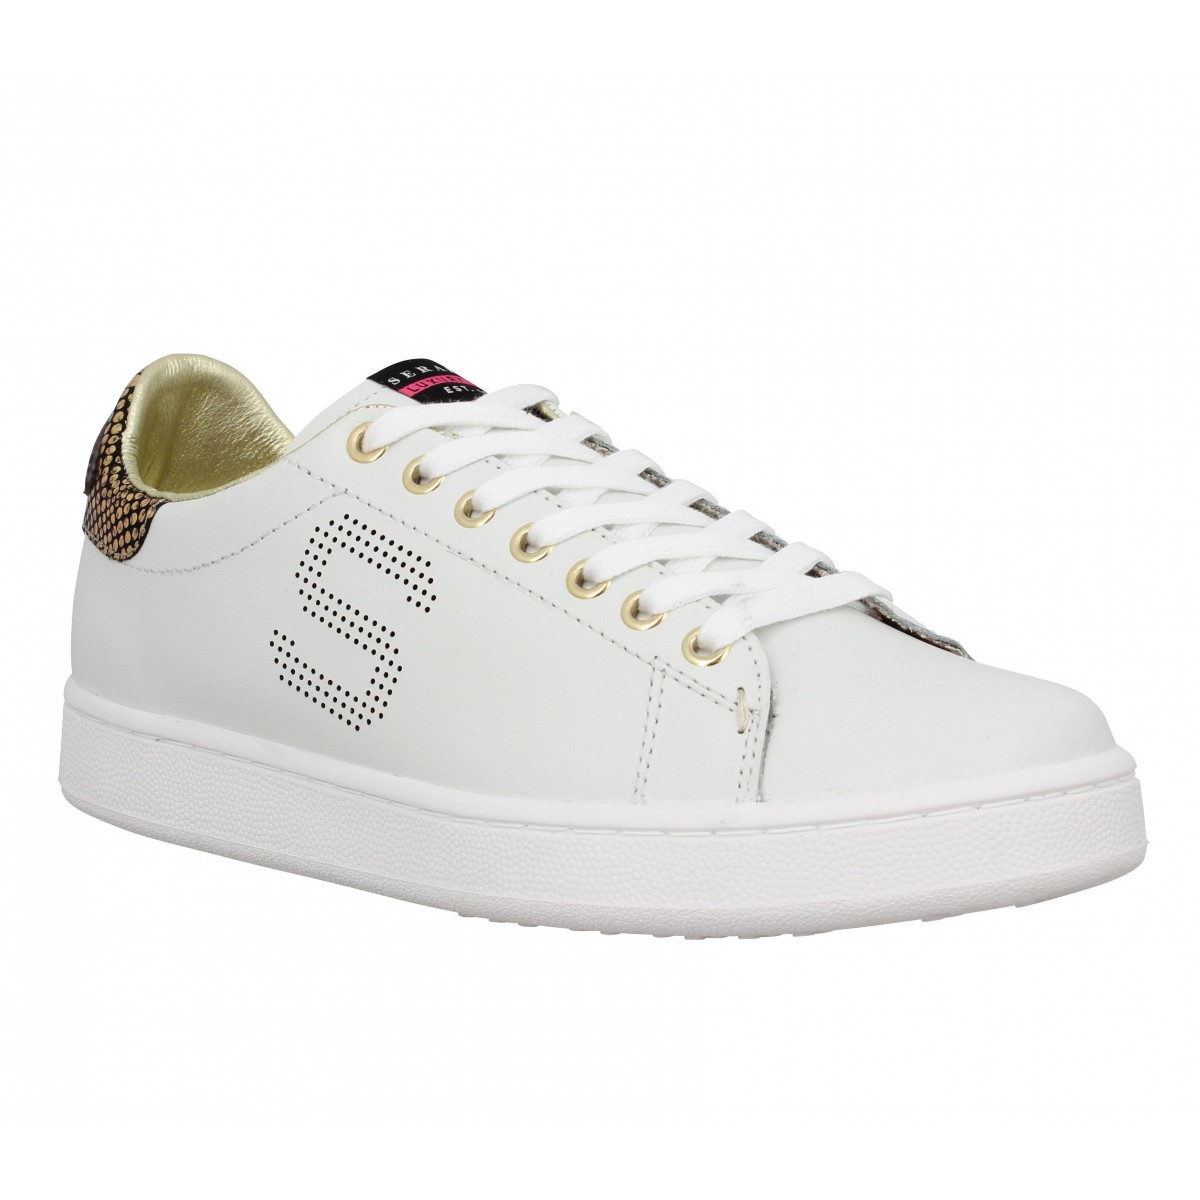 Baskets SERAFINI Connors lacet cuir Femme Blanc + Or